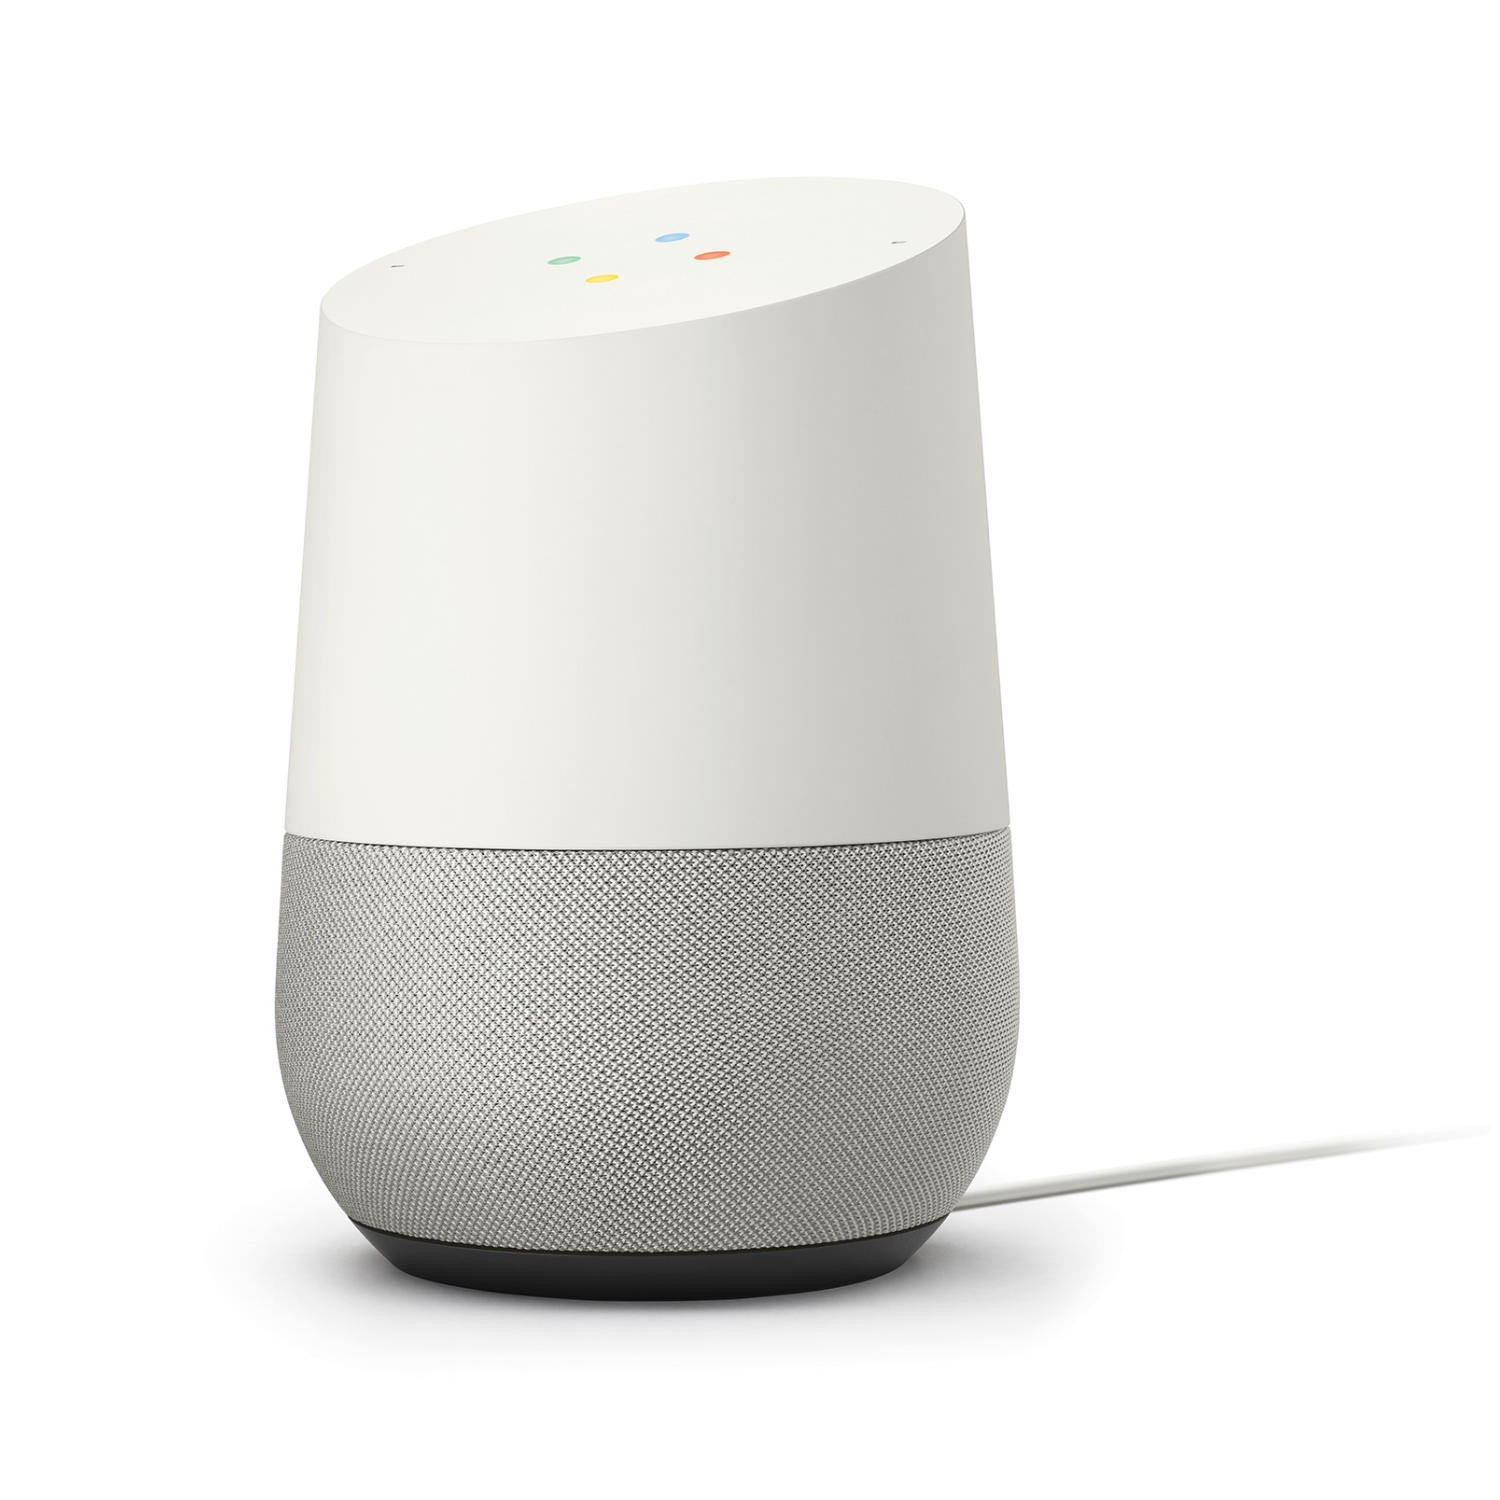 Google Home - Hands-free Smart Speaker